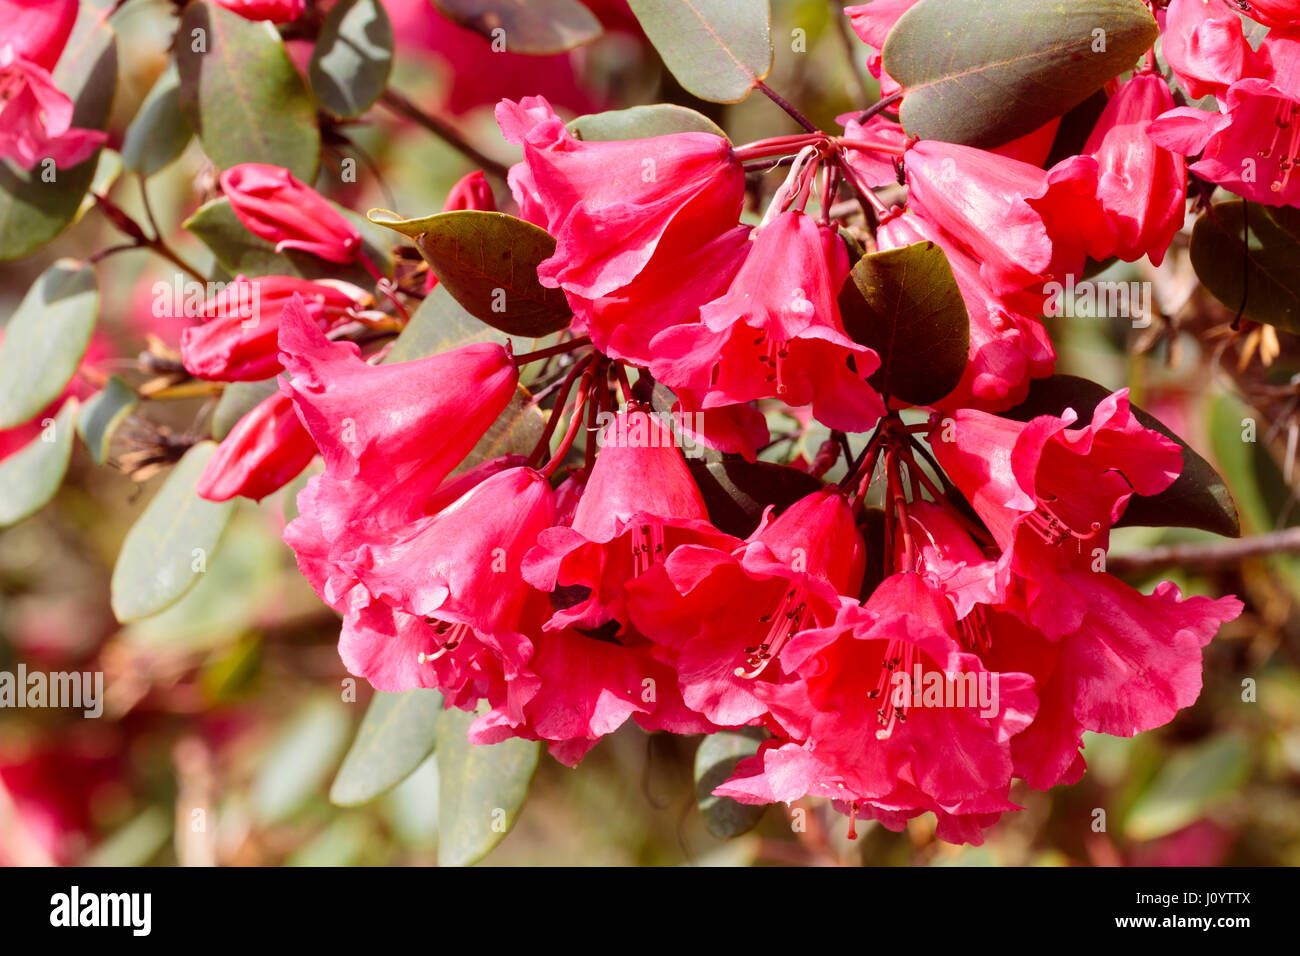 Spring bell flowers of a deep rose pink form of the evergreen shrub spring bell flowers of a deep rose pink form of the evergreen shrub rhododendron orbiculare mightylinksfo